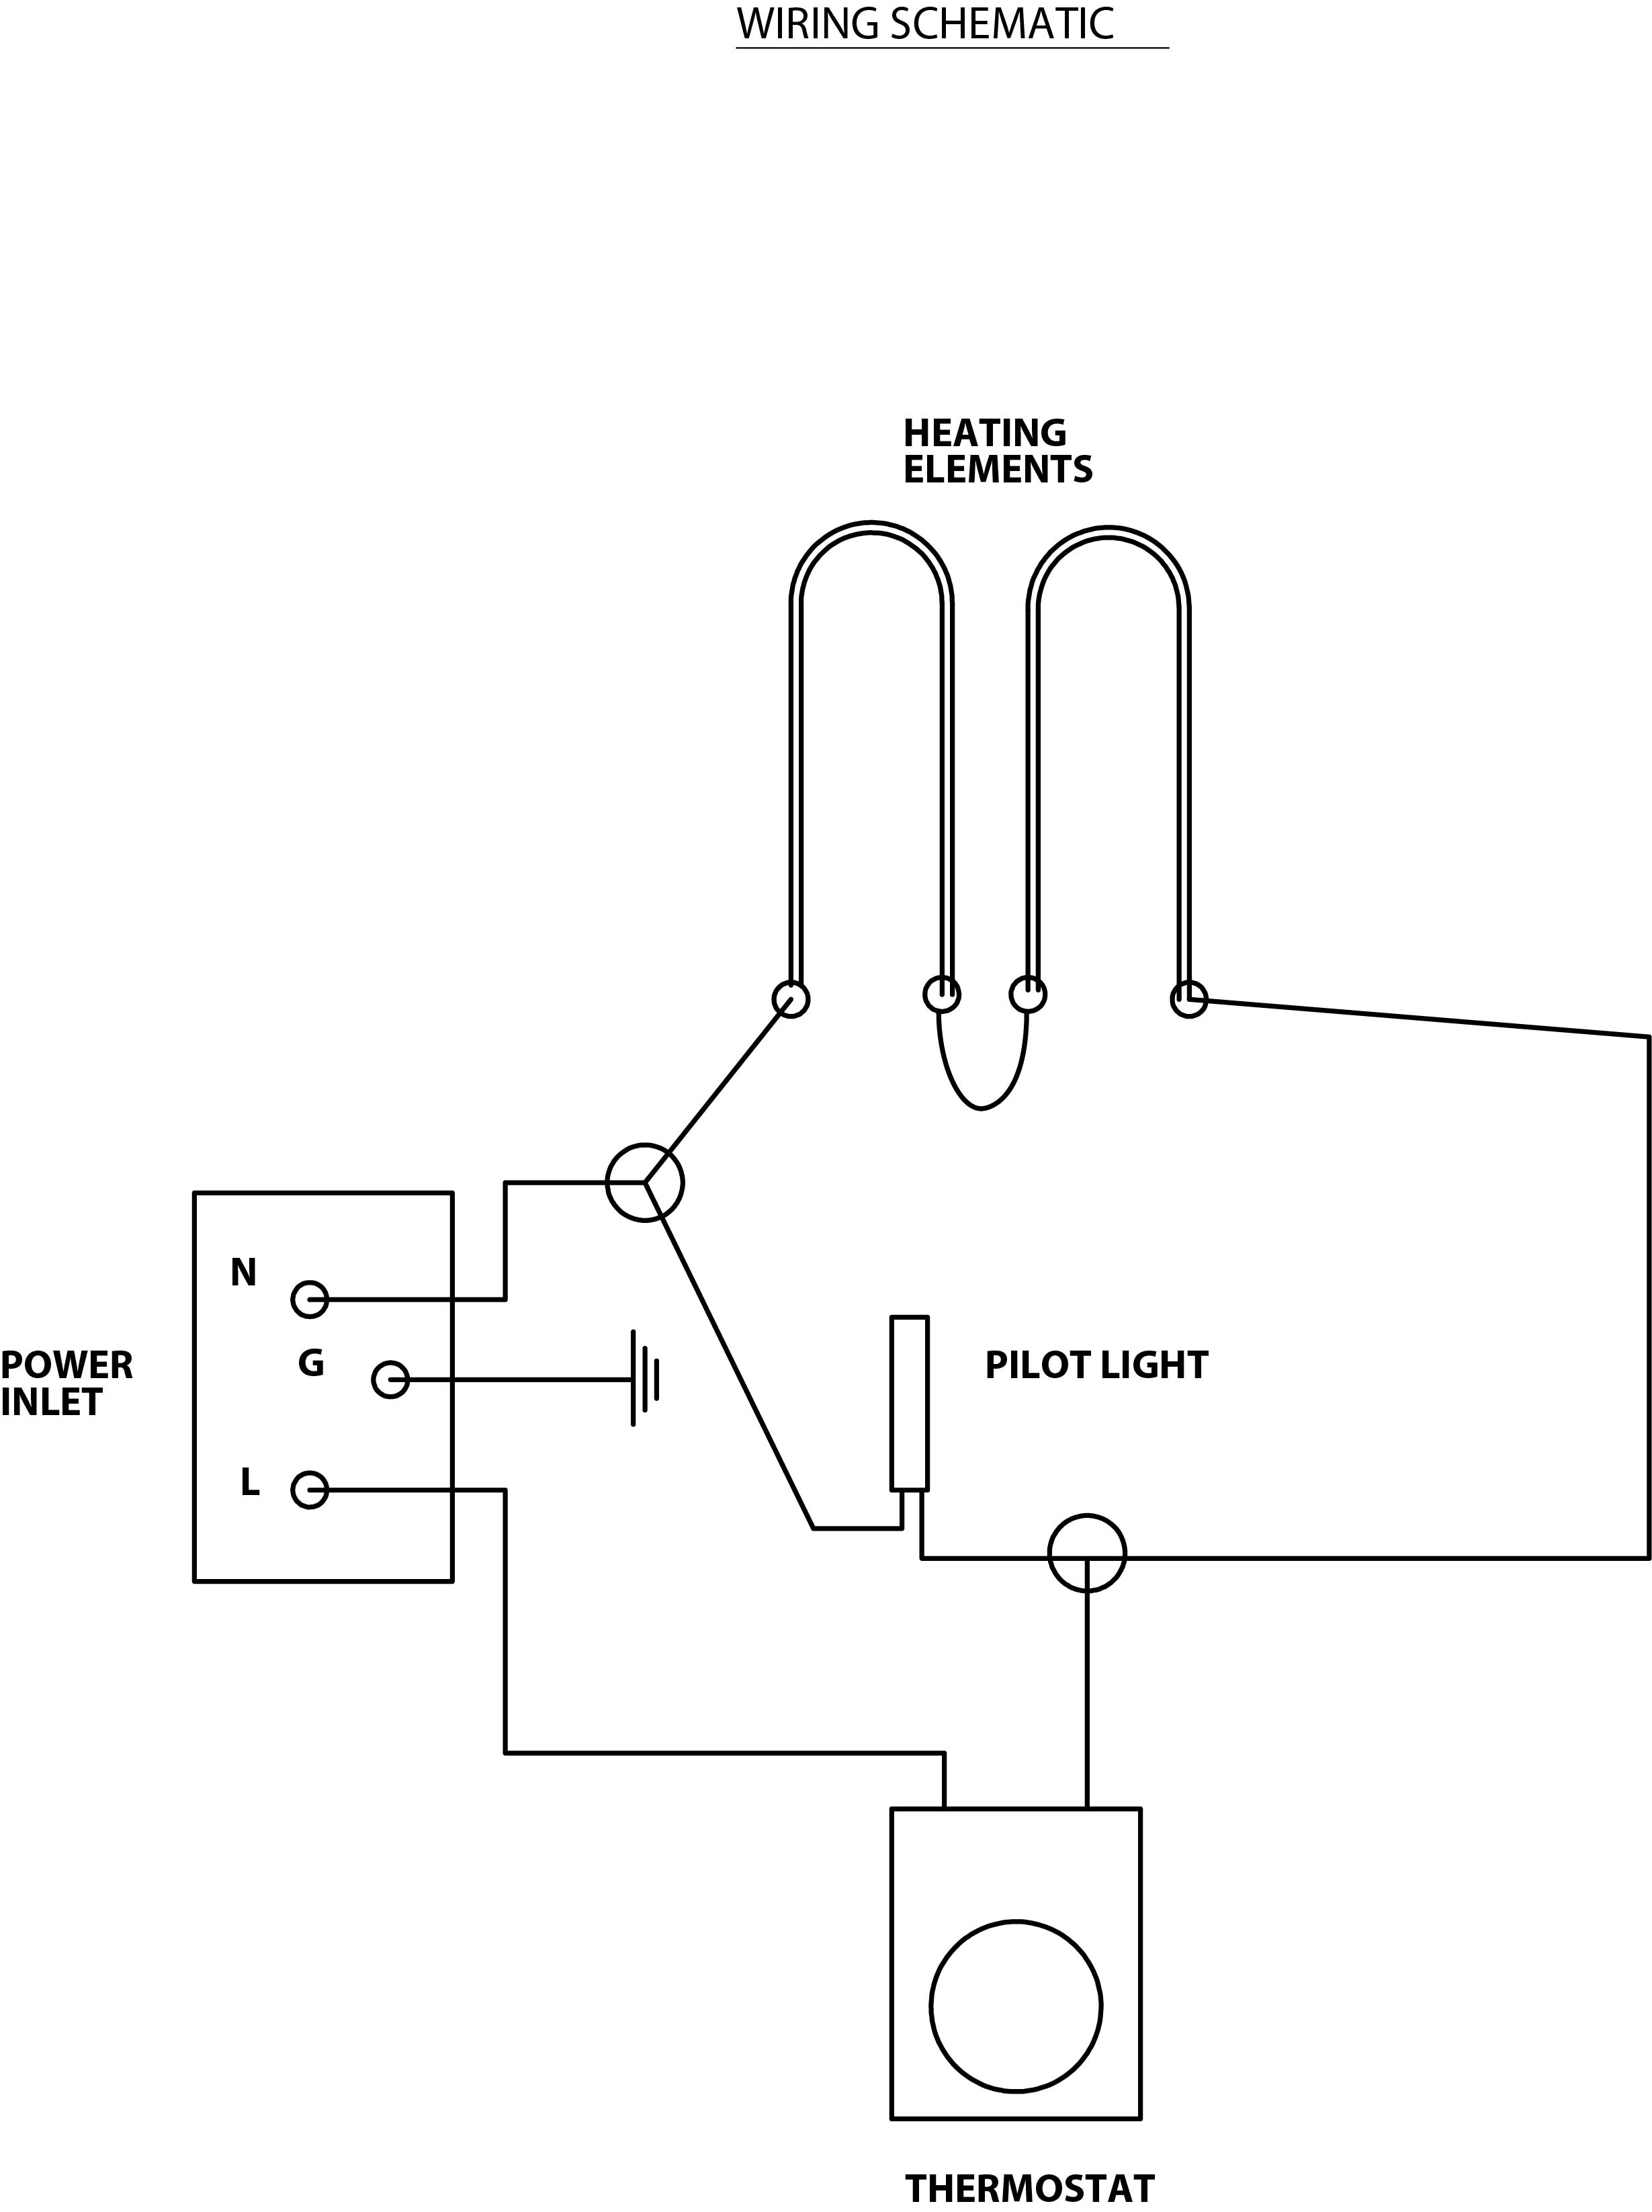 [WRG-5660] Heater Element Wiring Diagram